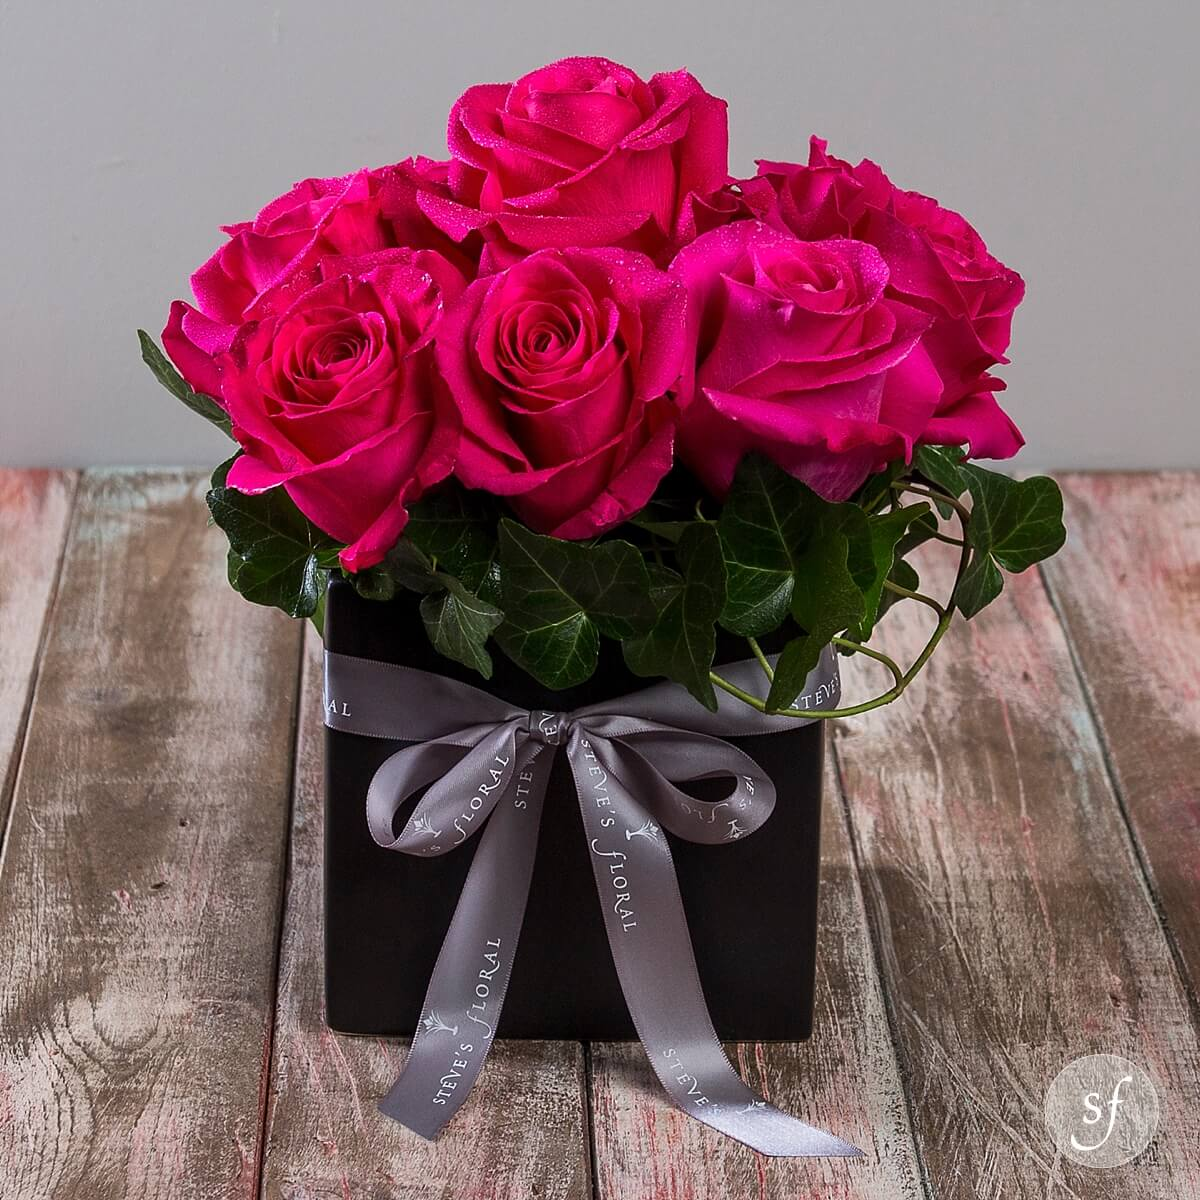 Pav roses flower collection roses steves floral bright pink pave roses create a modern and petite centerpiece that is perfect for smaller spaces mightylinksfo